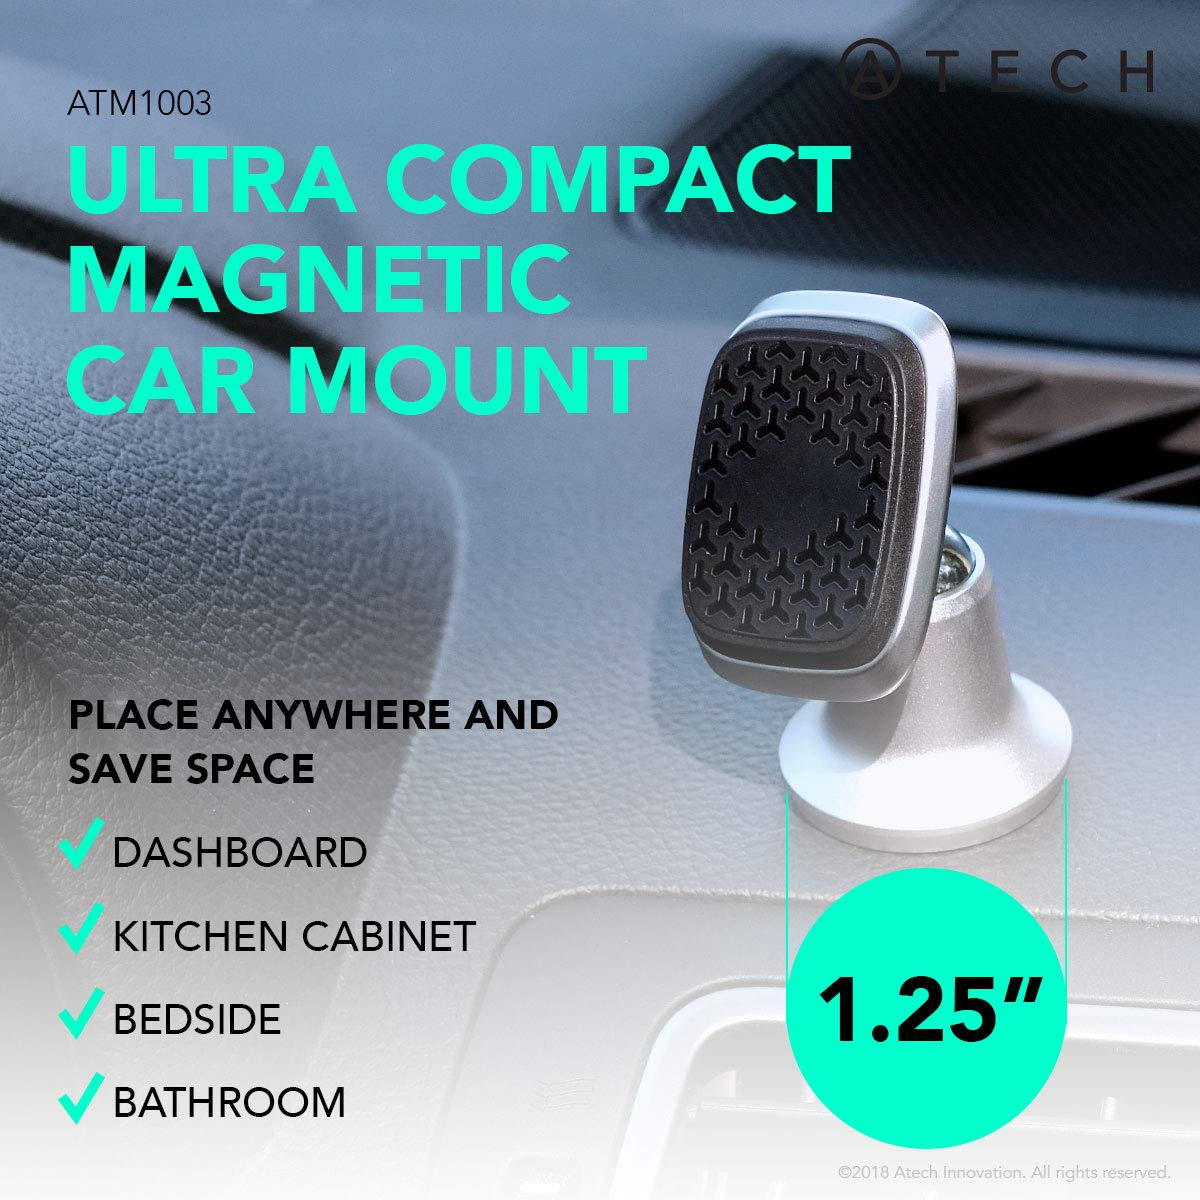 Black ATECH INNOVATION 4351665876 Bedside Bathroom ATECH Magnetic Car Dashboard Mount Kitchen 360 Rotation Universal Adhesive Small-Sized Phone Holder for Car